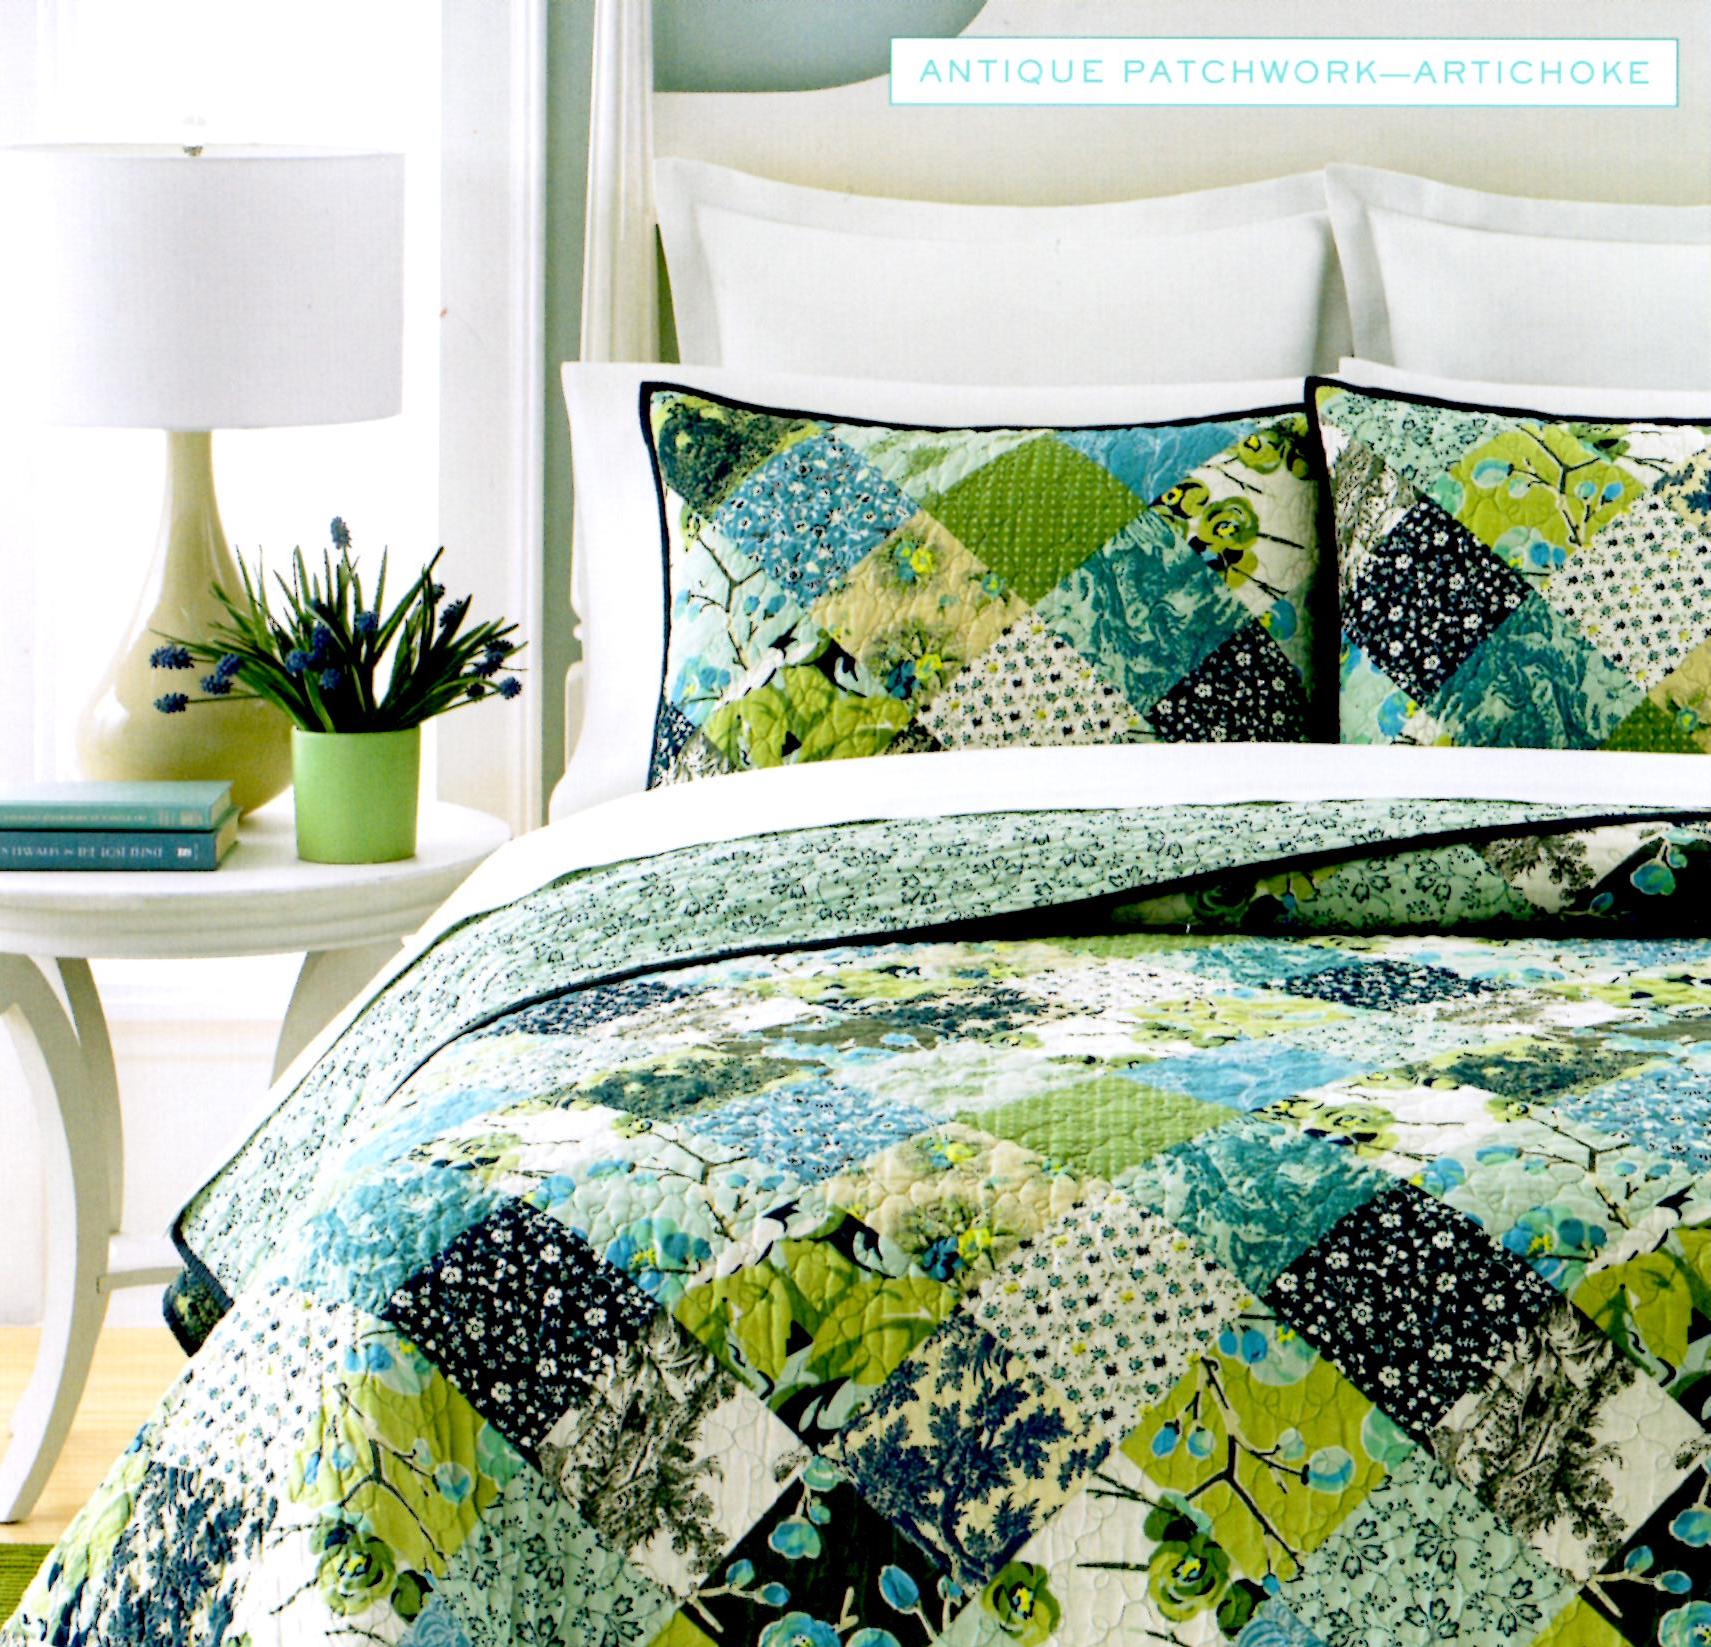 Martha Stewart Antique Patchwork King Quilt SOC 1103